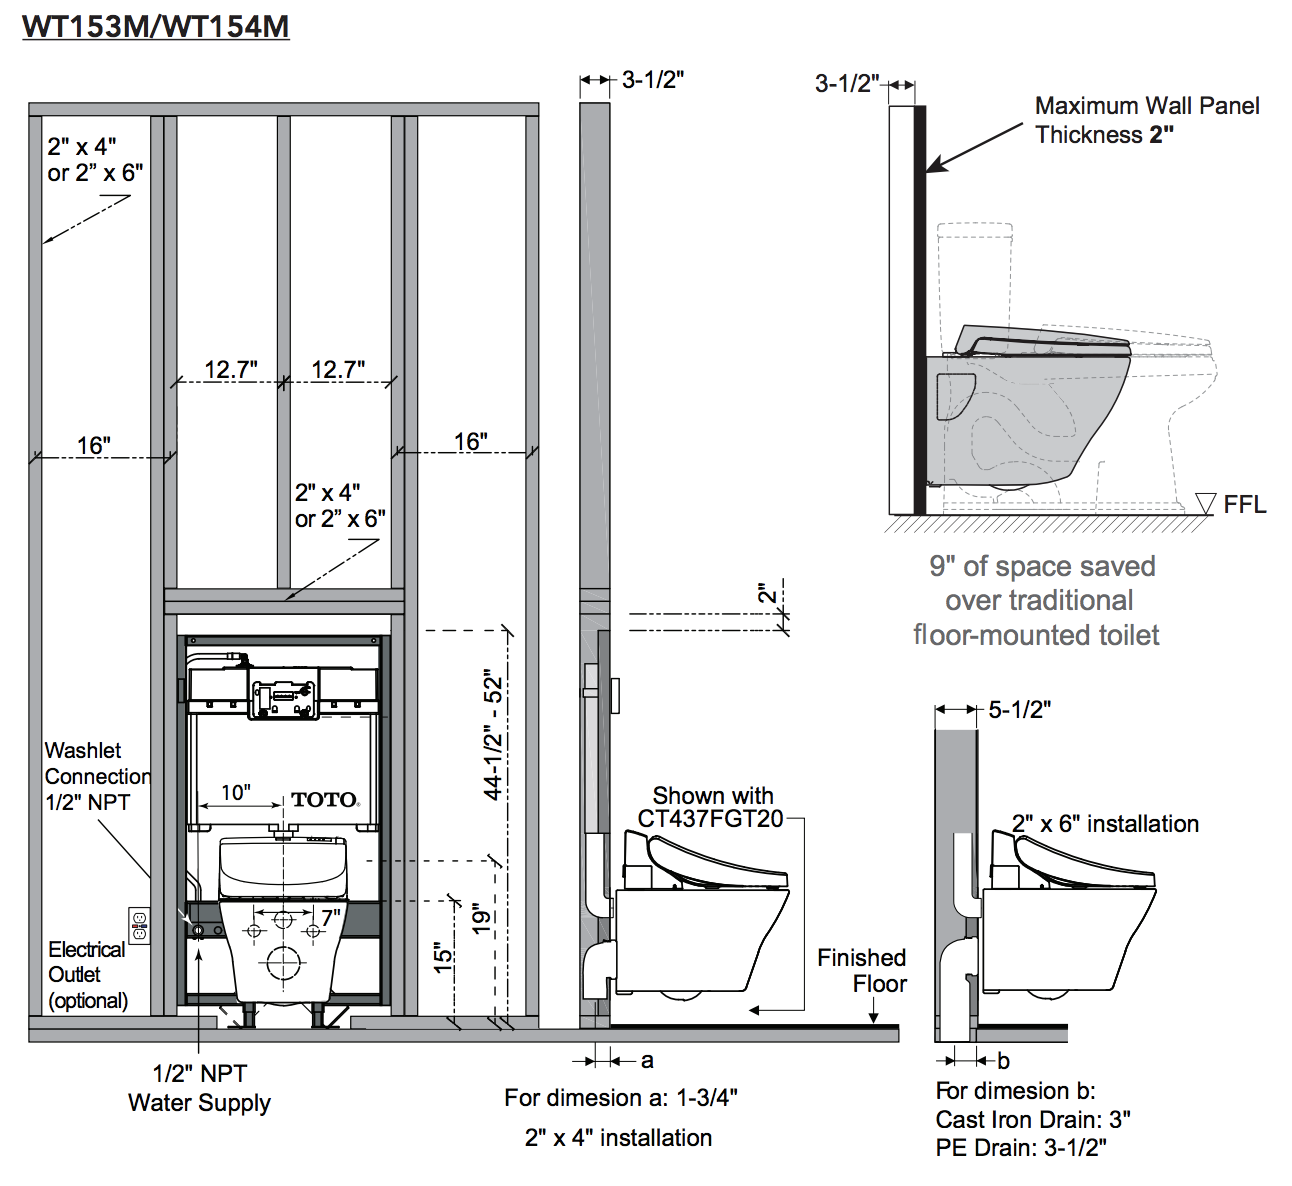 mh-washlet-c200-wall-hung-toilet-1.28-gpf-0.9-gpf-pex-supply-diagram-2.png